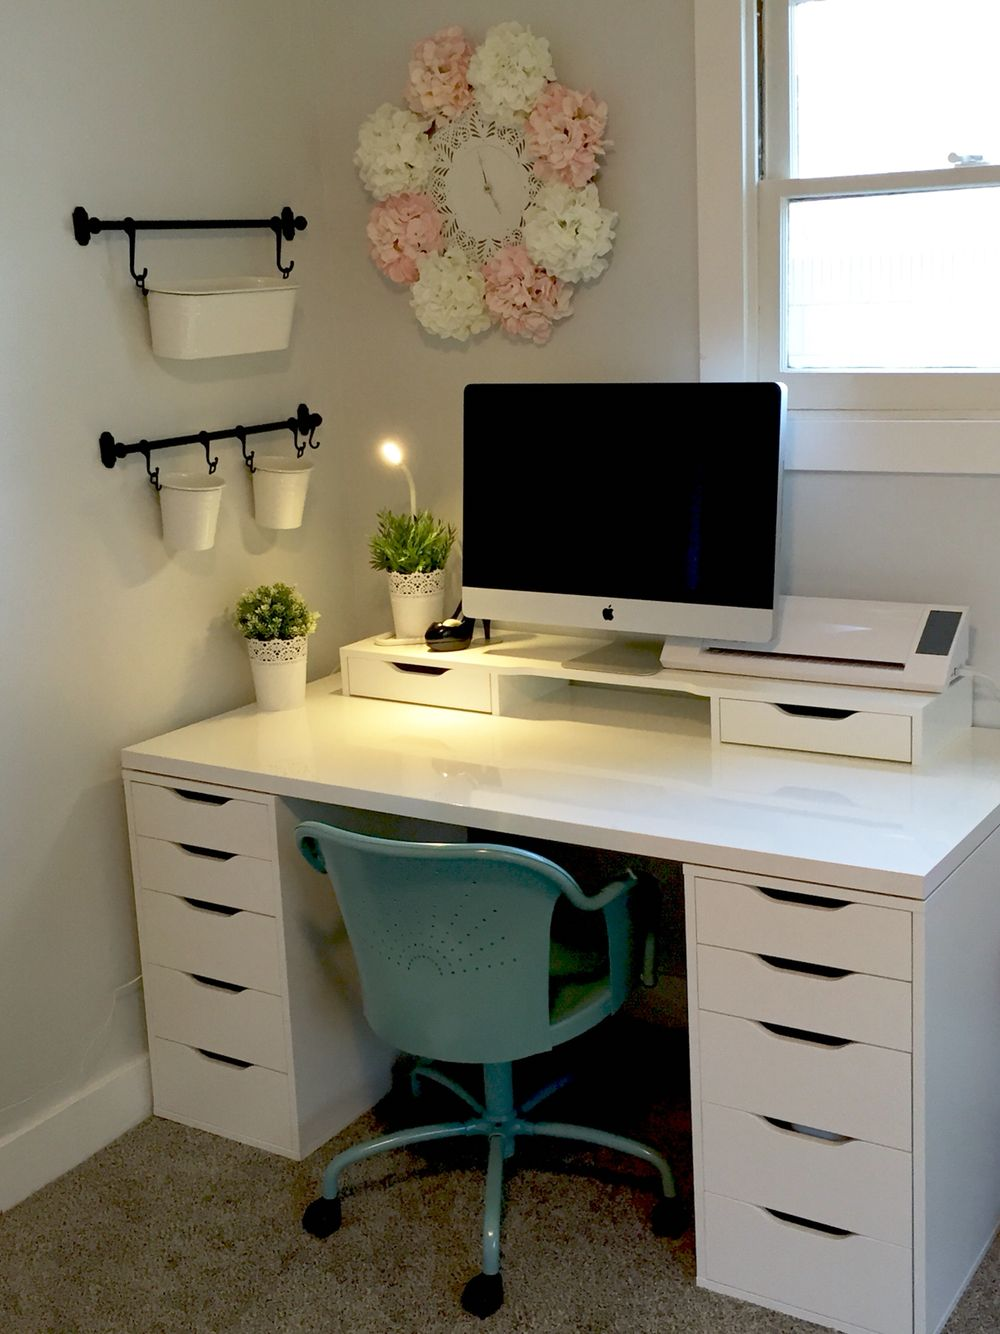 The 25 Best Ikea Alex Desk Ideas On Pinterest Desks Ikea White Desks And Alex Desk